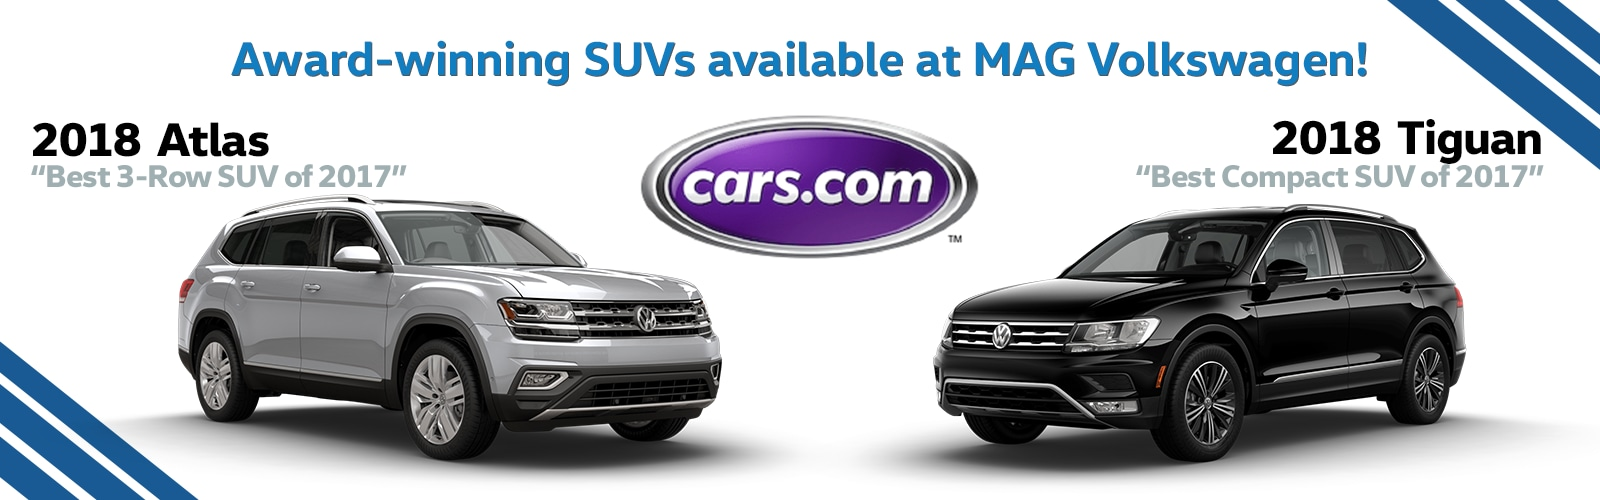 MAG Volkswagen | New Volkswagen dealership in Dublin, OH 43017